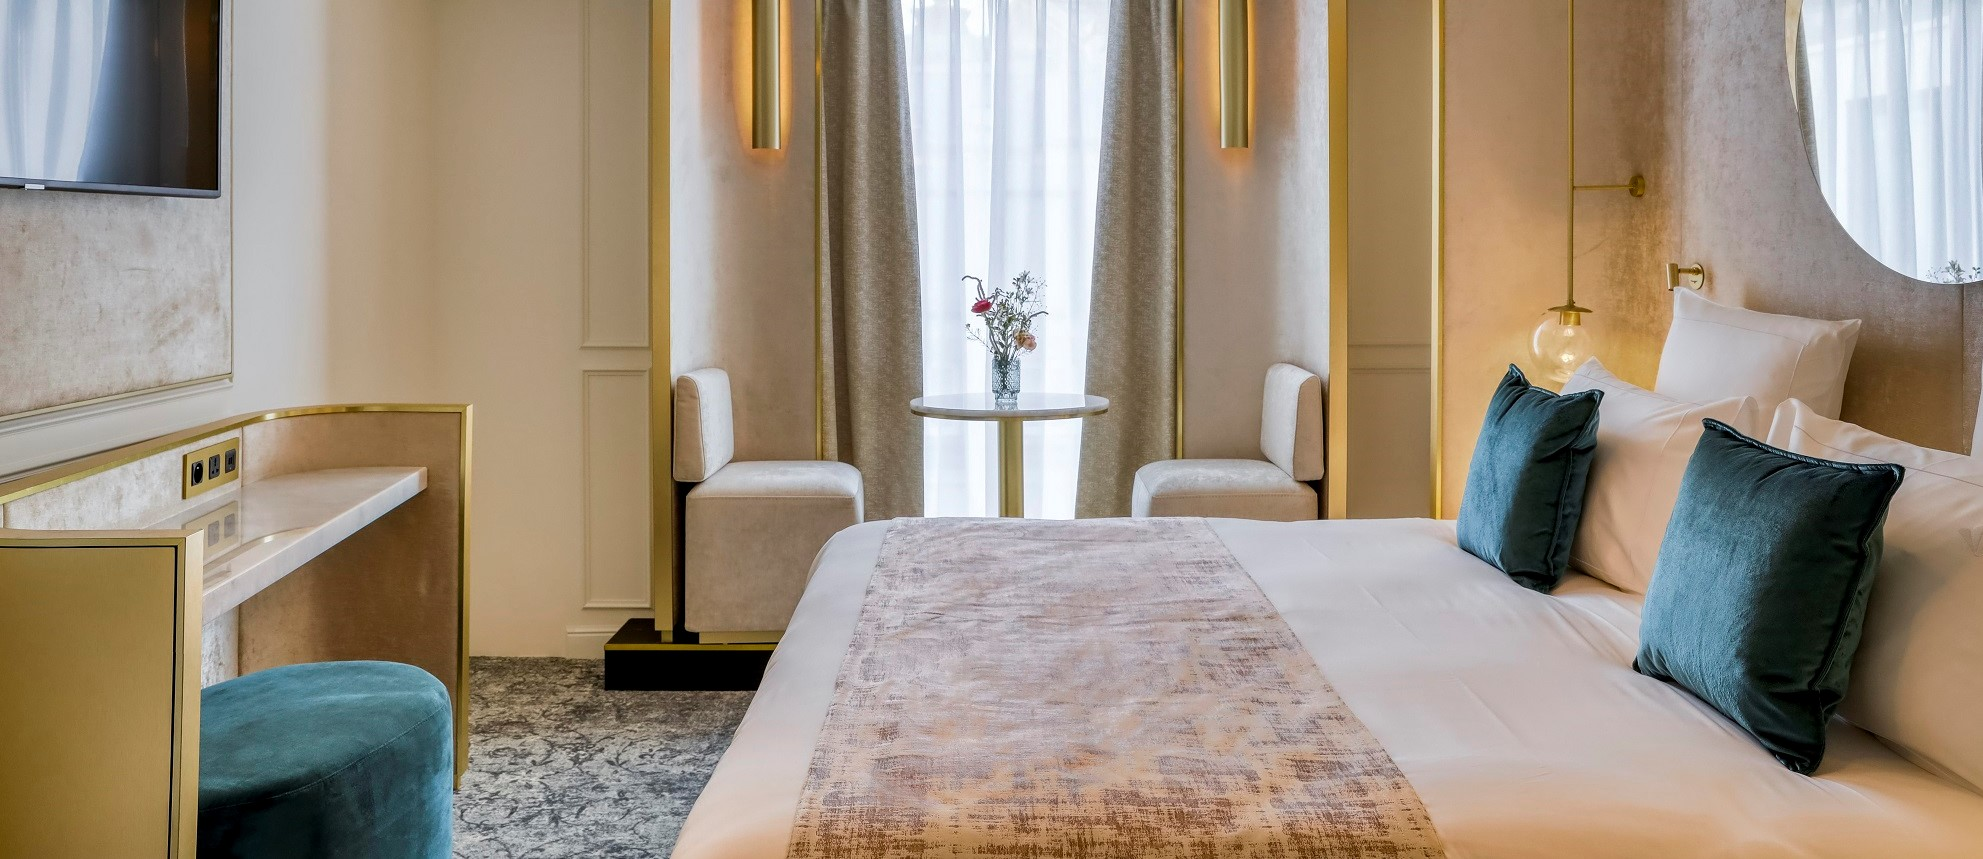 Maison Albar Hotels Le Vendome Suite Vendome